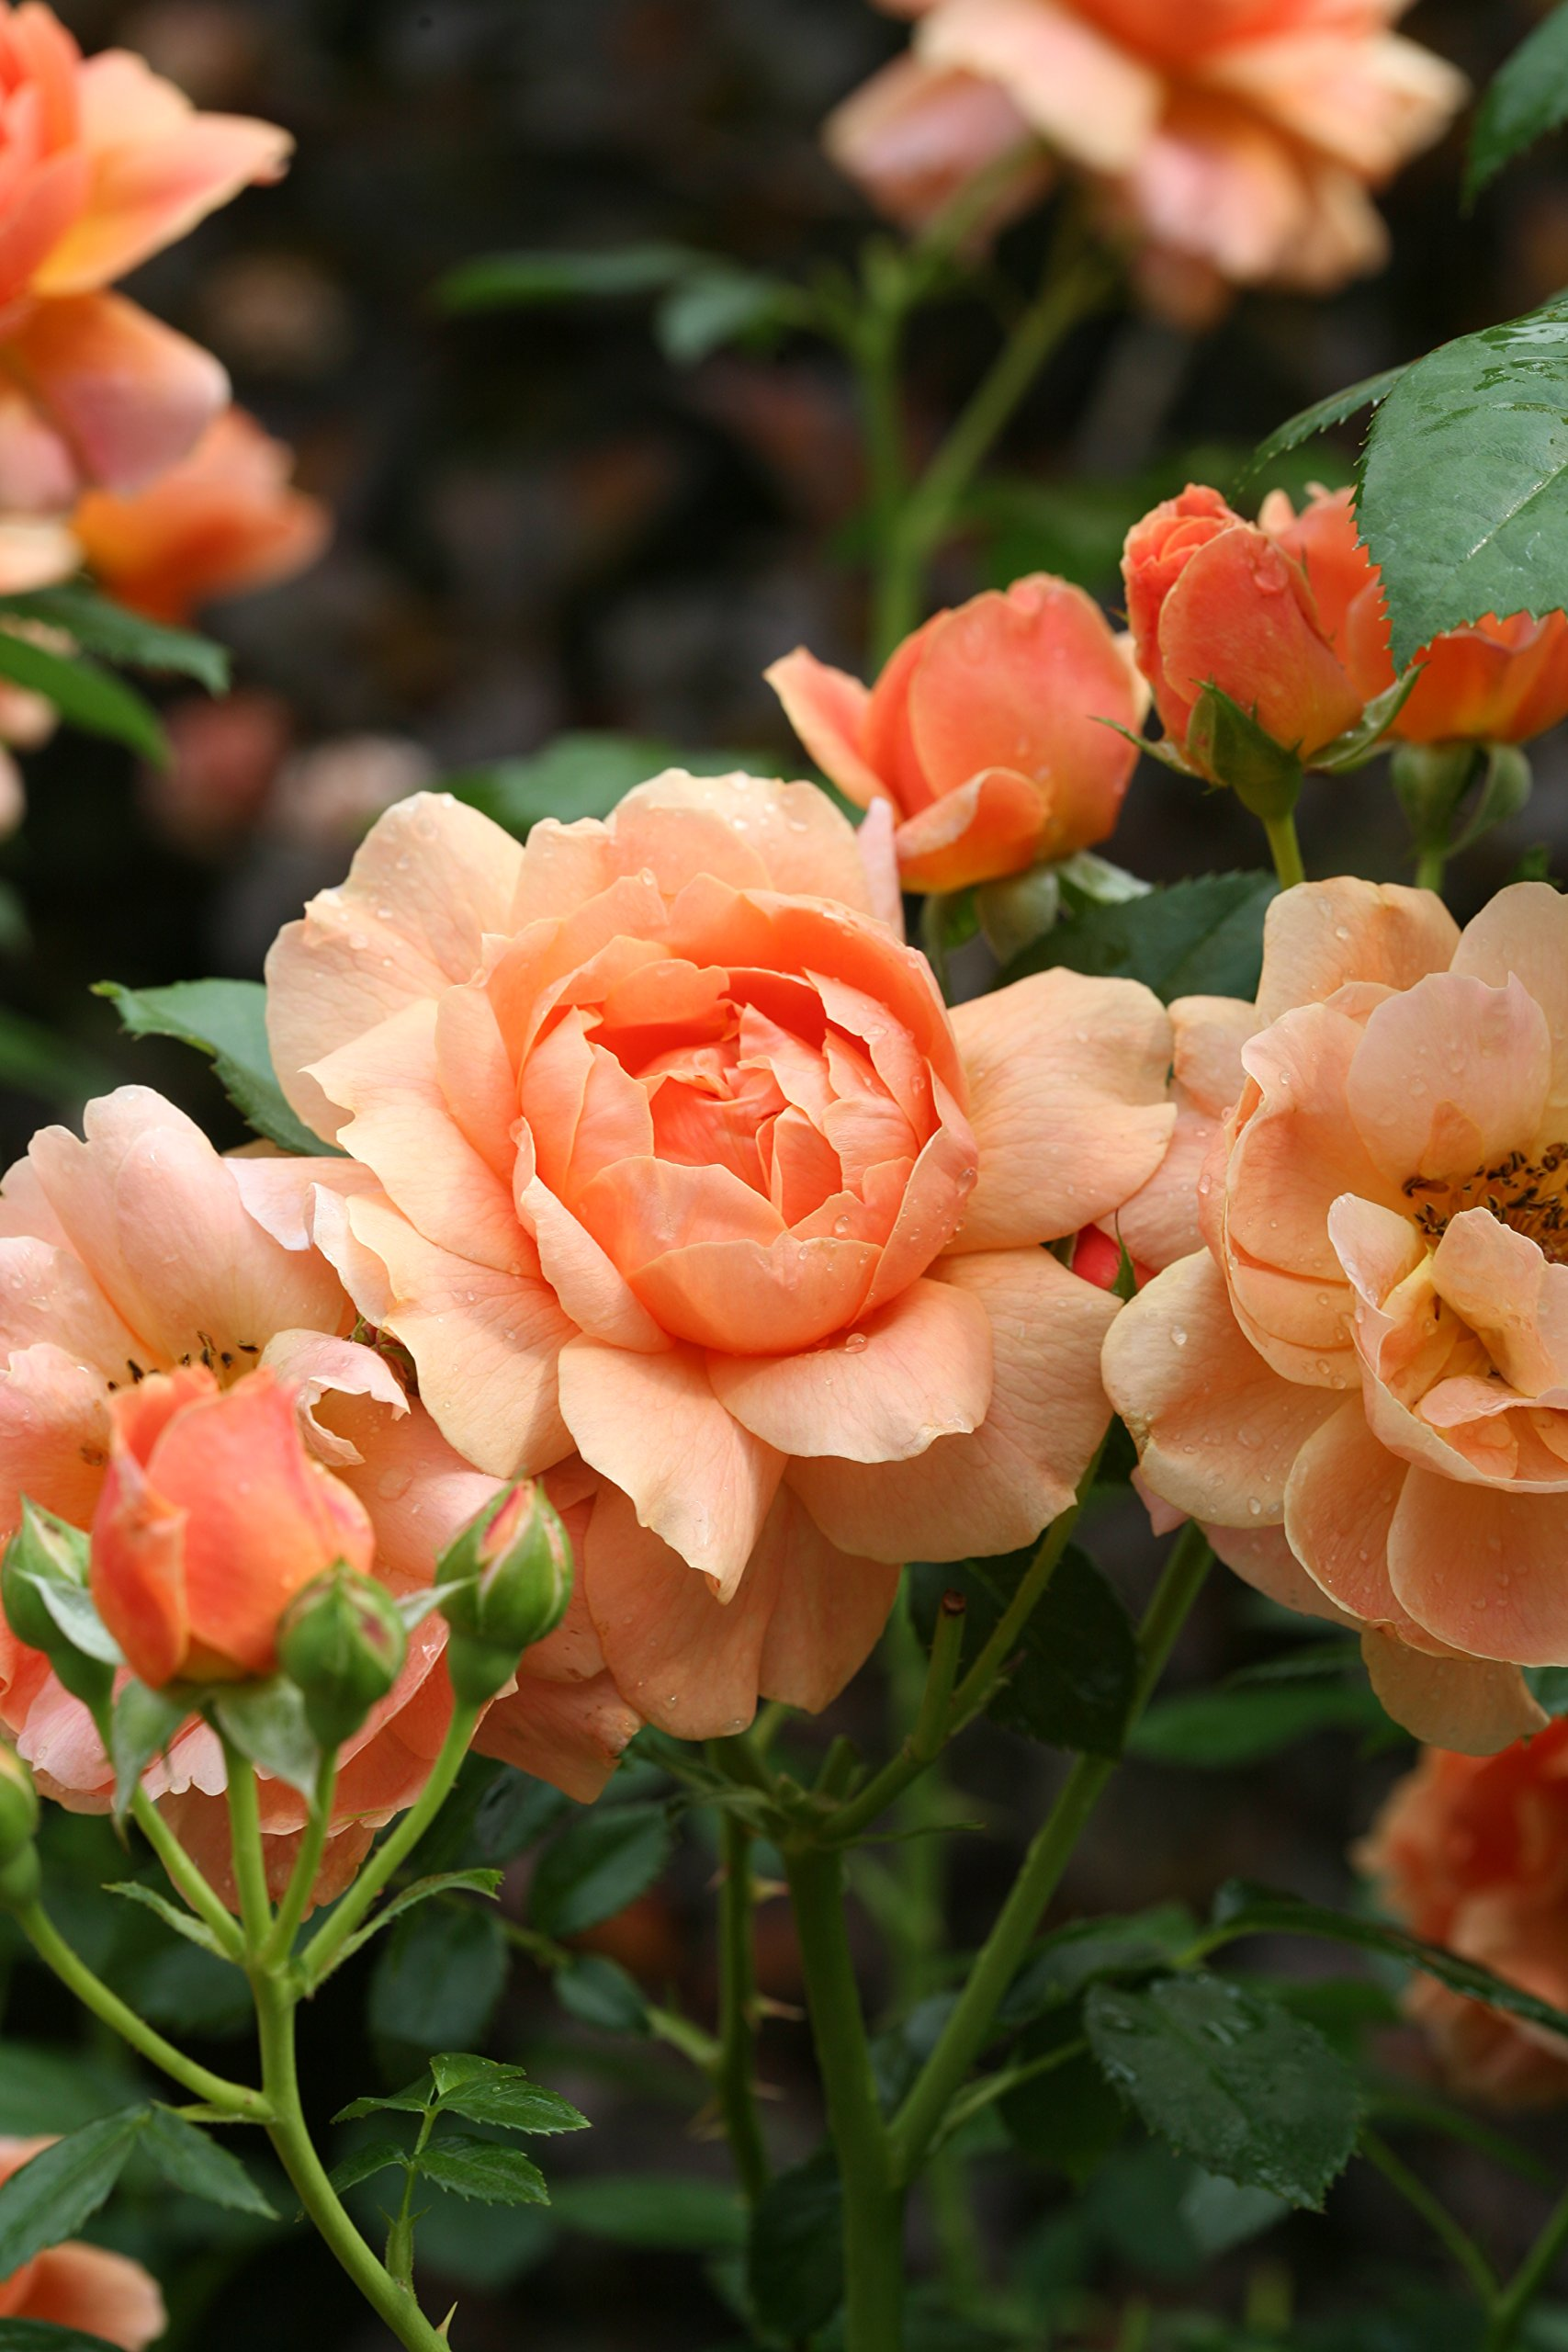 At Last Rose (Rosa) Live Shrub, Orange Flowers, 4.5 in. Quart by Proven Winners (Image #5)